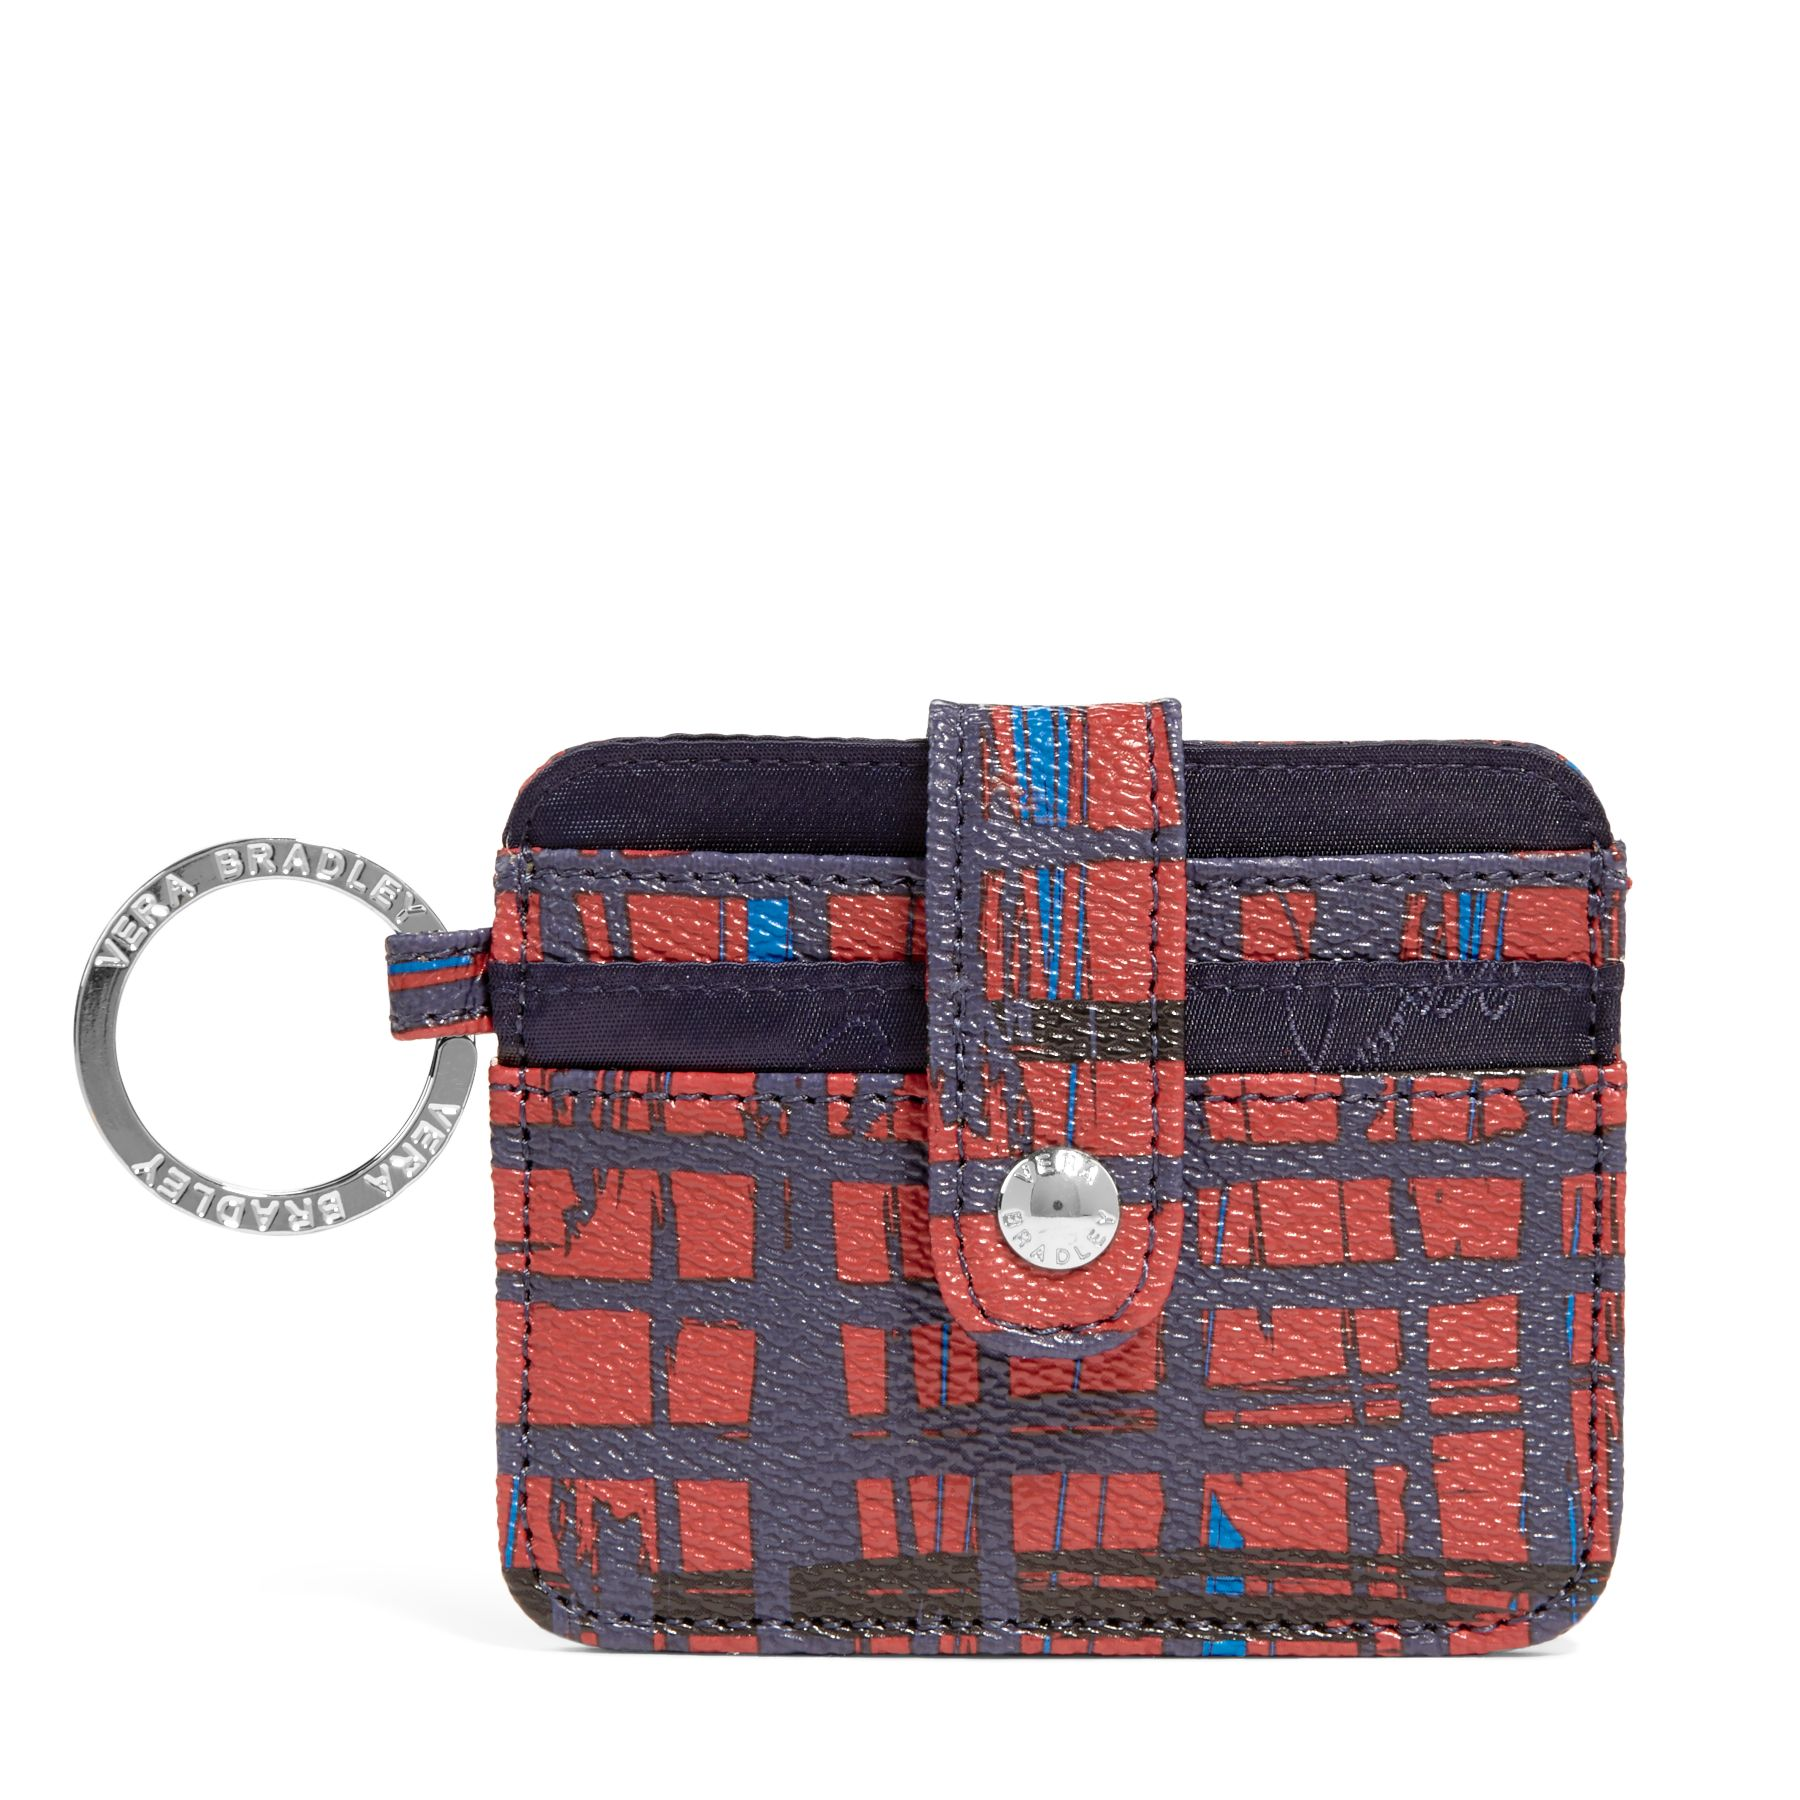 Vera Bradley In a Snap Card Case in Navy/Red Art Plaid